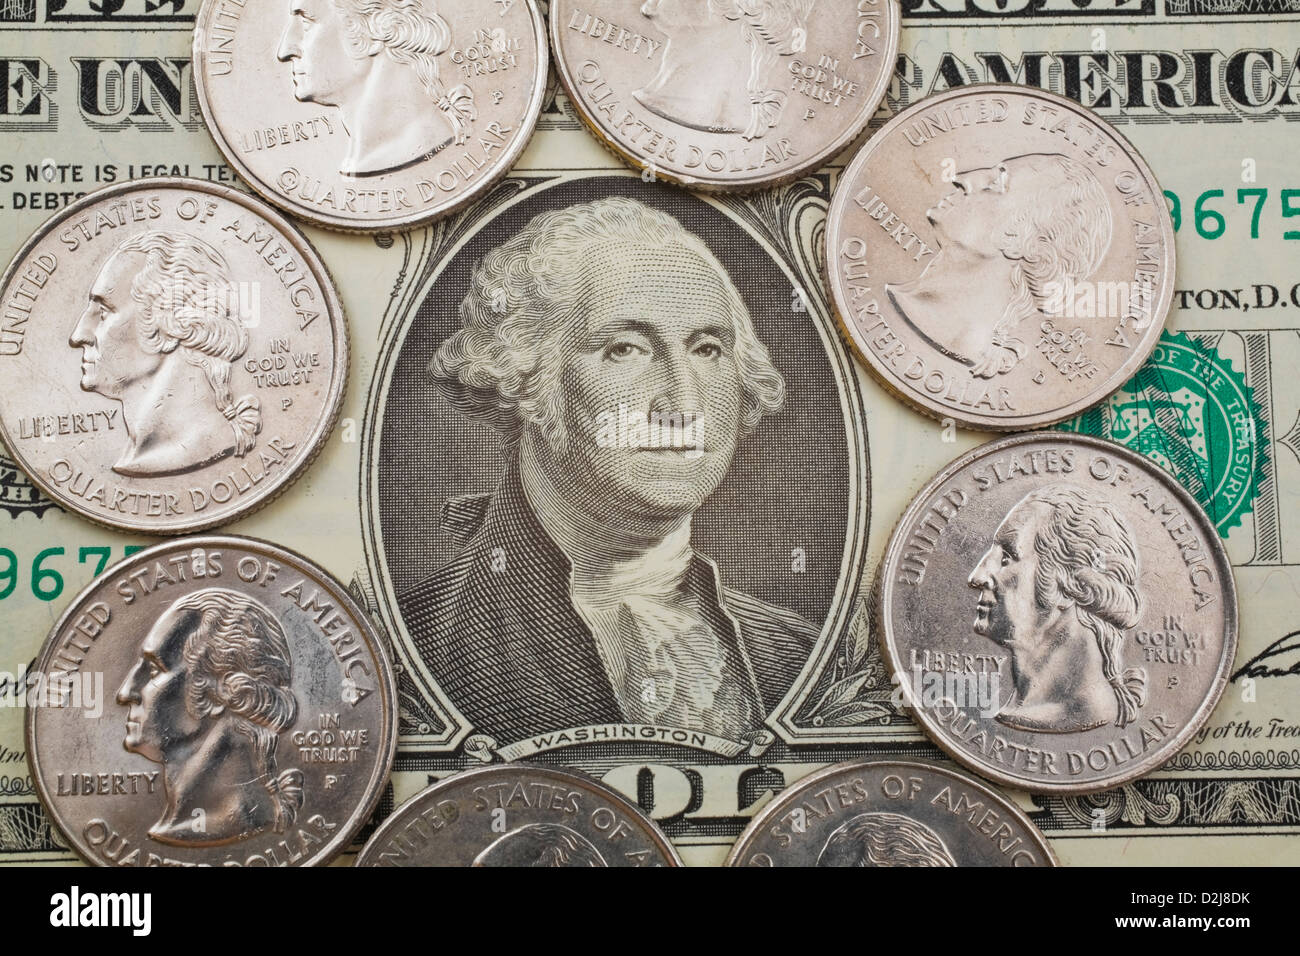 Portrait Of George Washington On A Us One Dollar Bill And